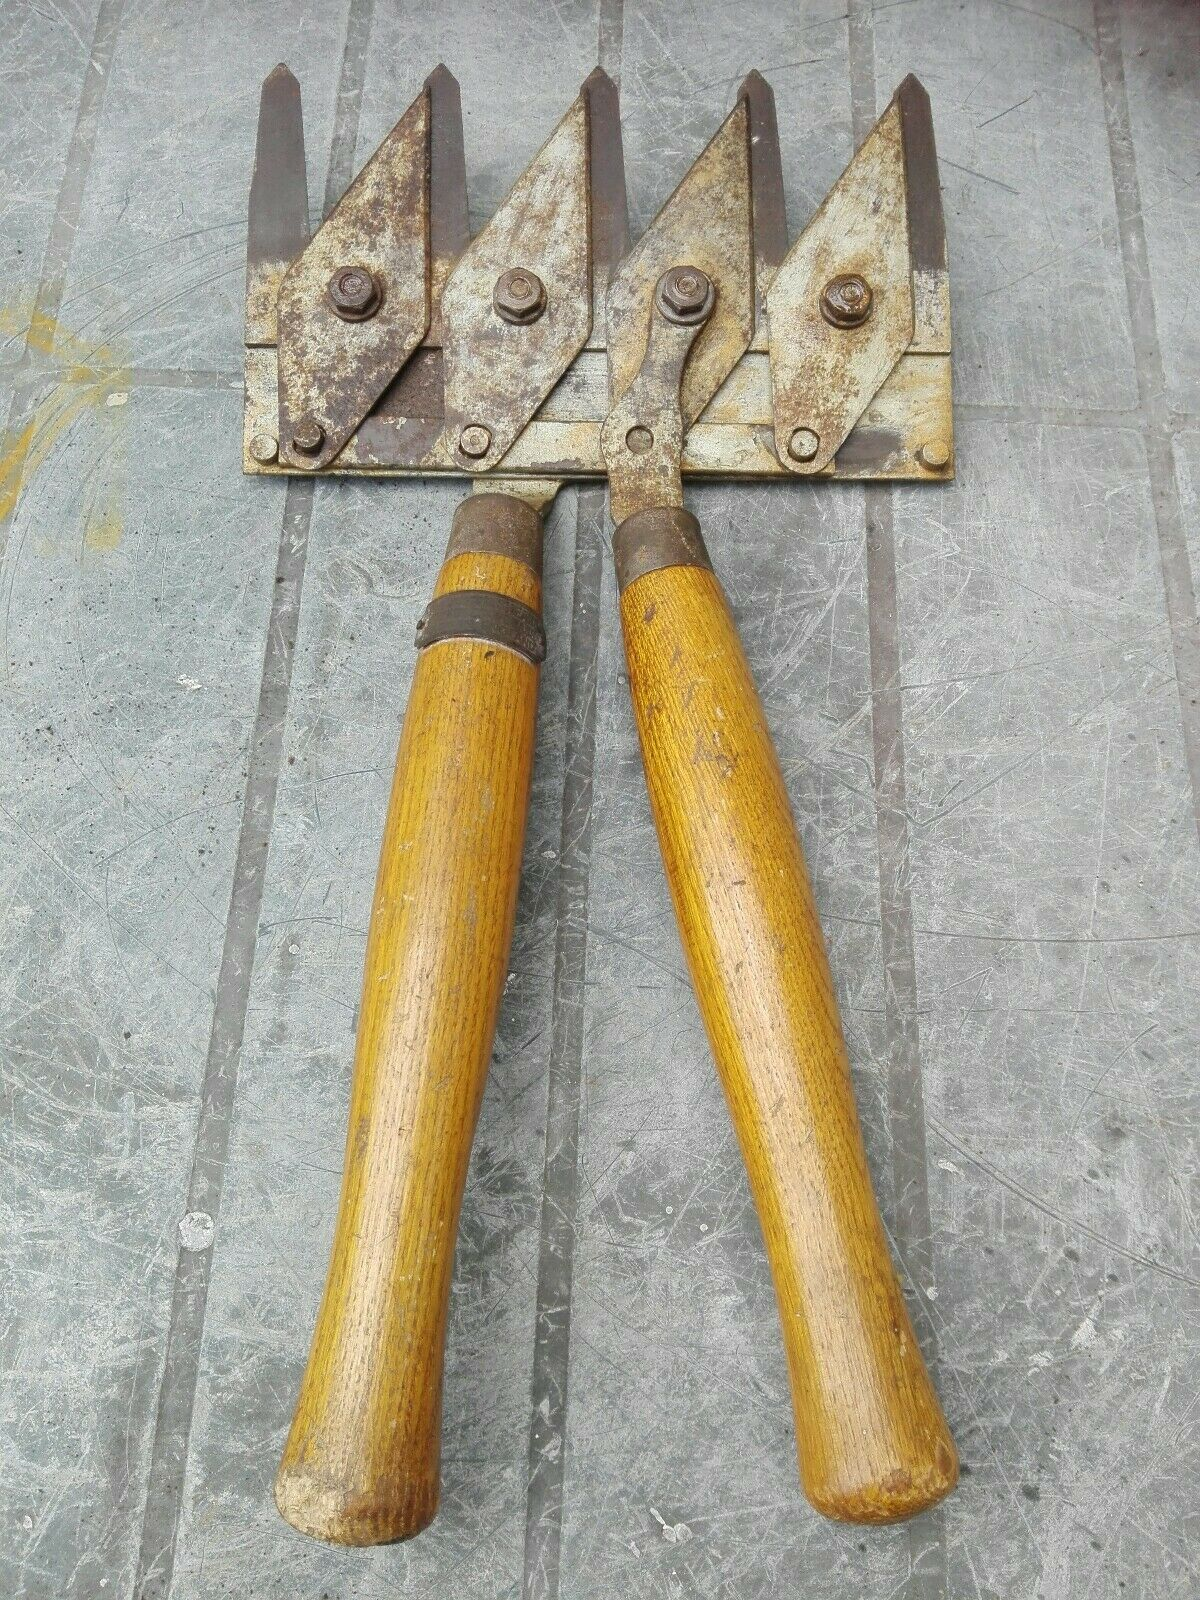 Antique 'Astor Shears for Hedge & Grass Made in England'